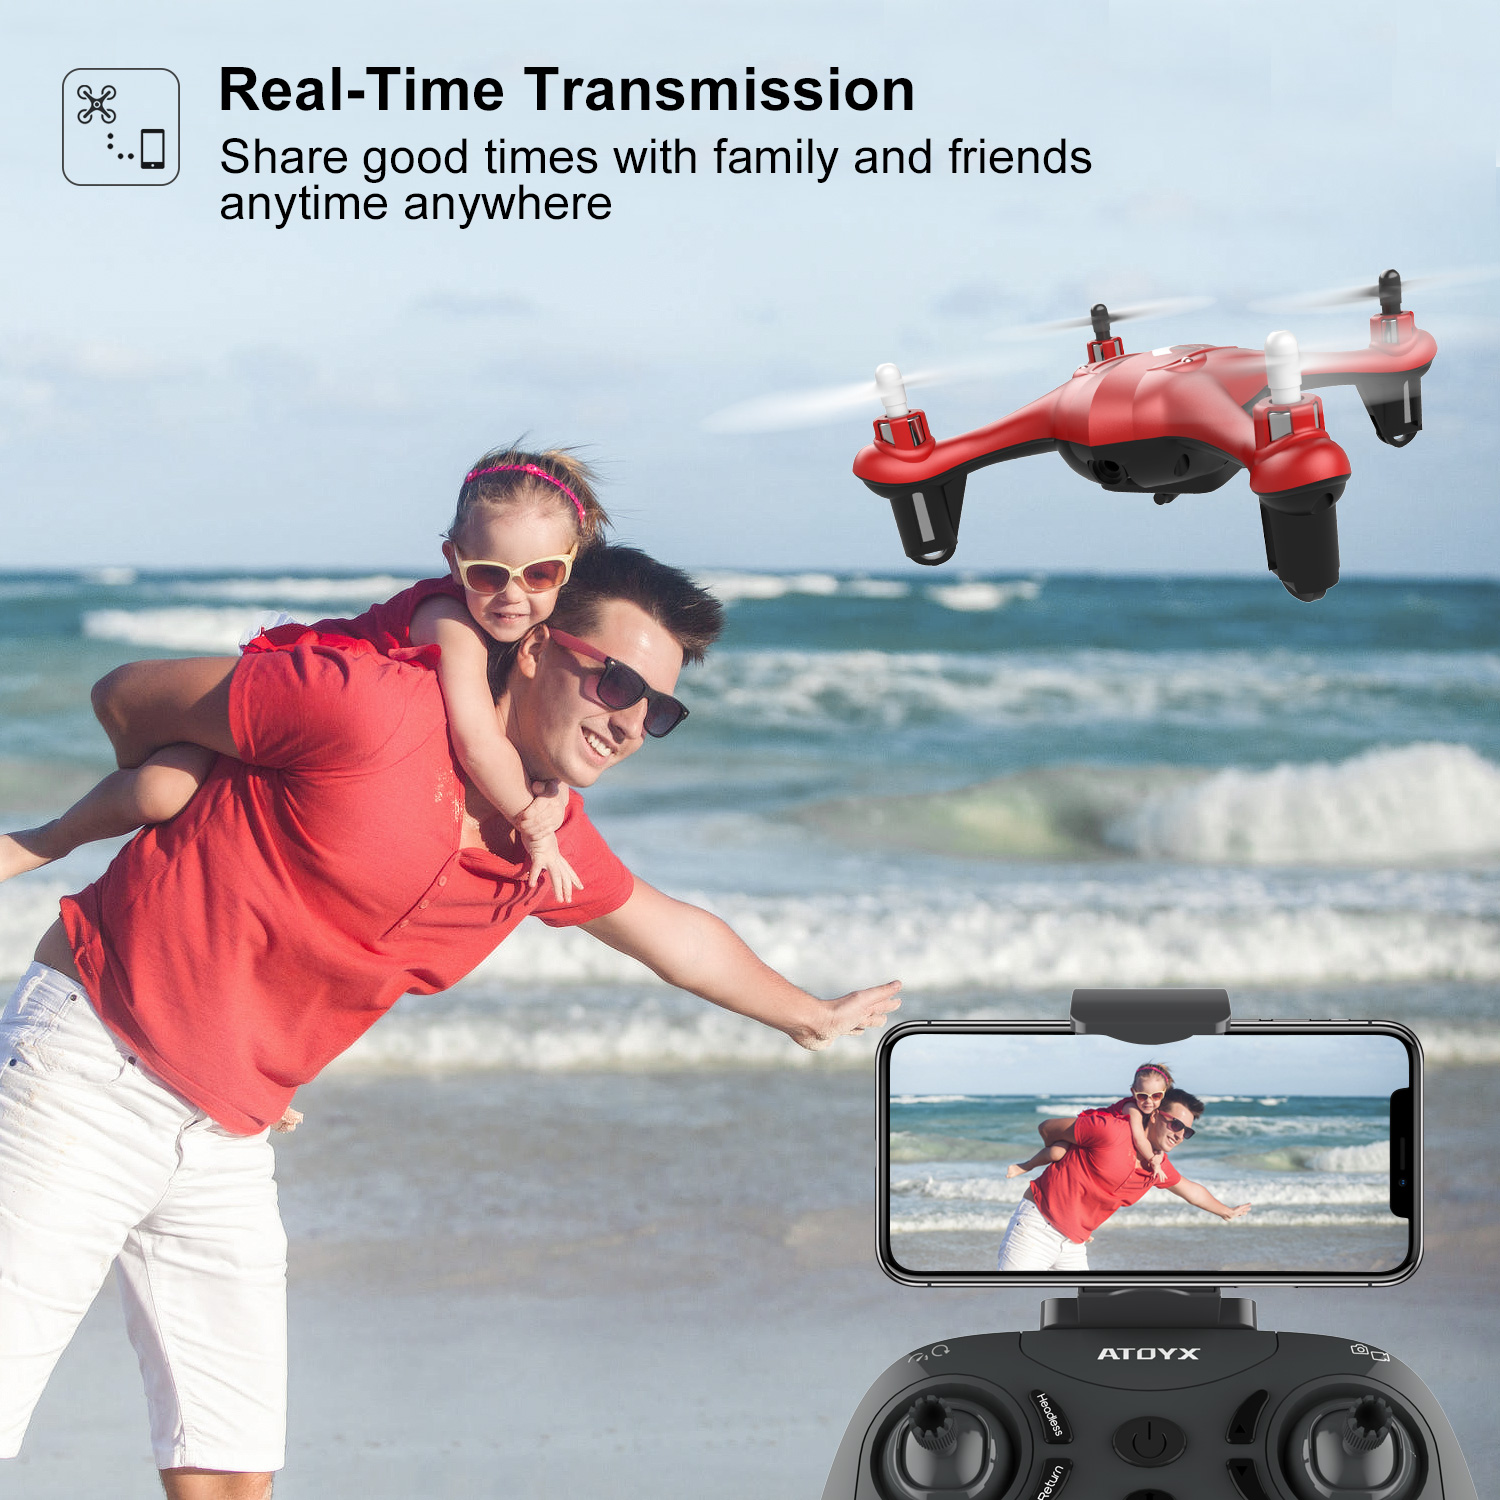 Apex HD Drone 4K Quadcopter Profissional Drone Cameras Mini Drone Toys for Children Folding Dron RC Helicopter Drones Kids Toy